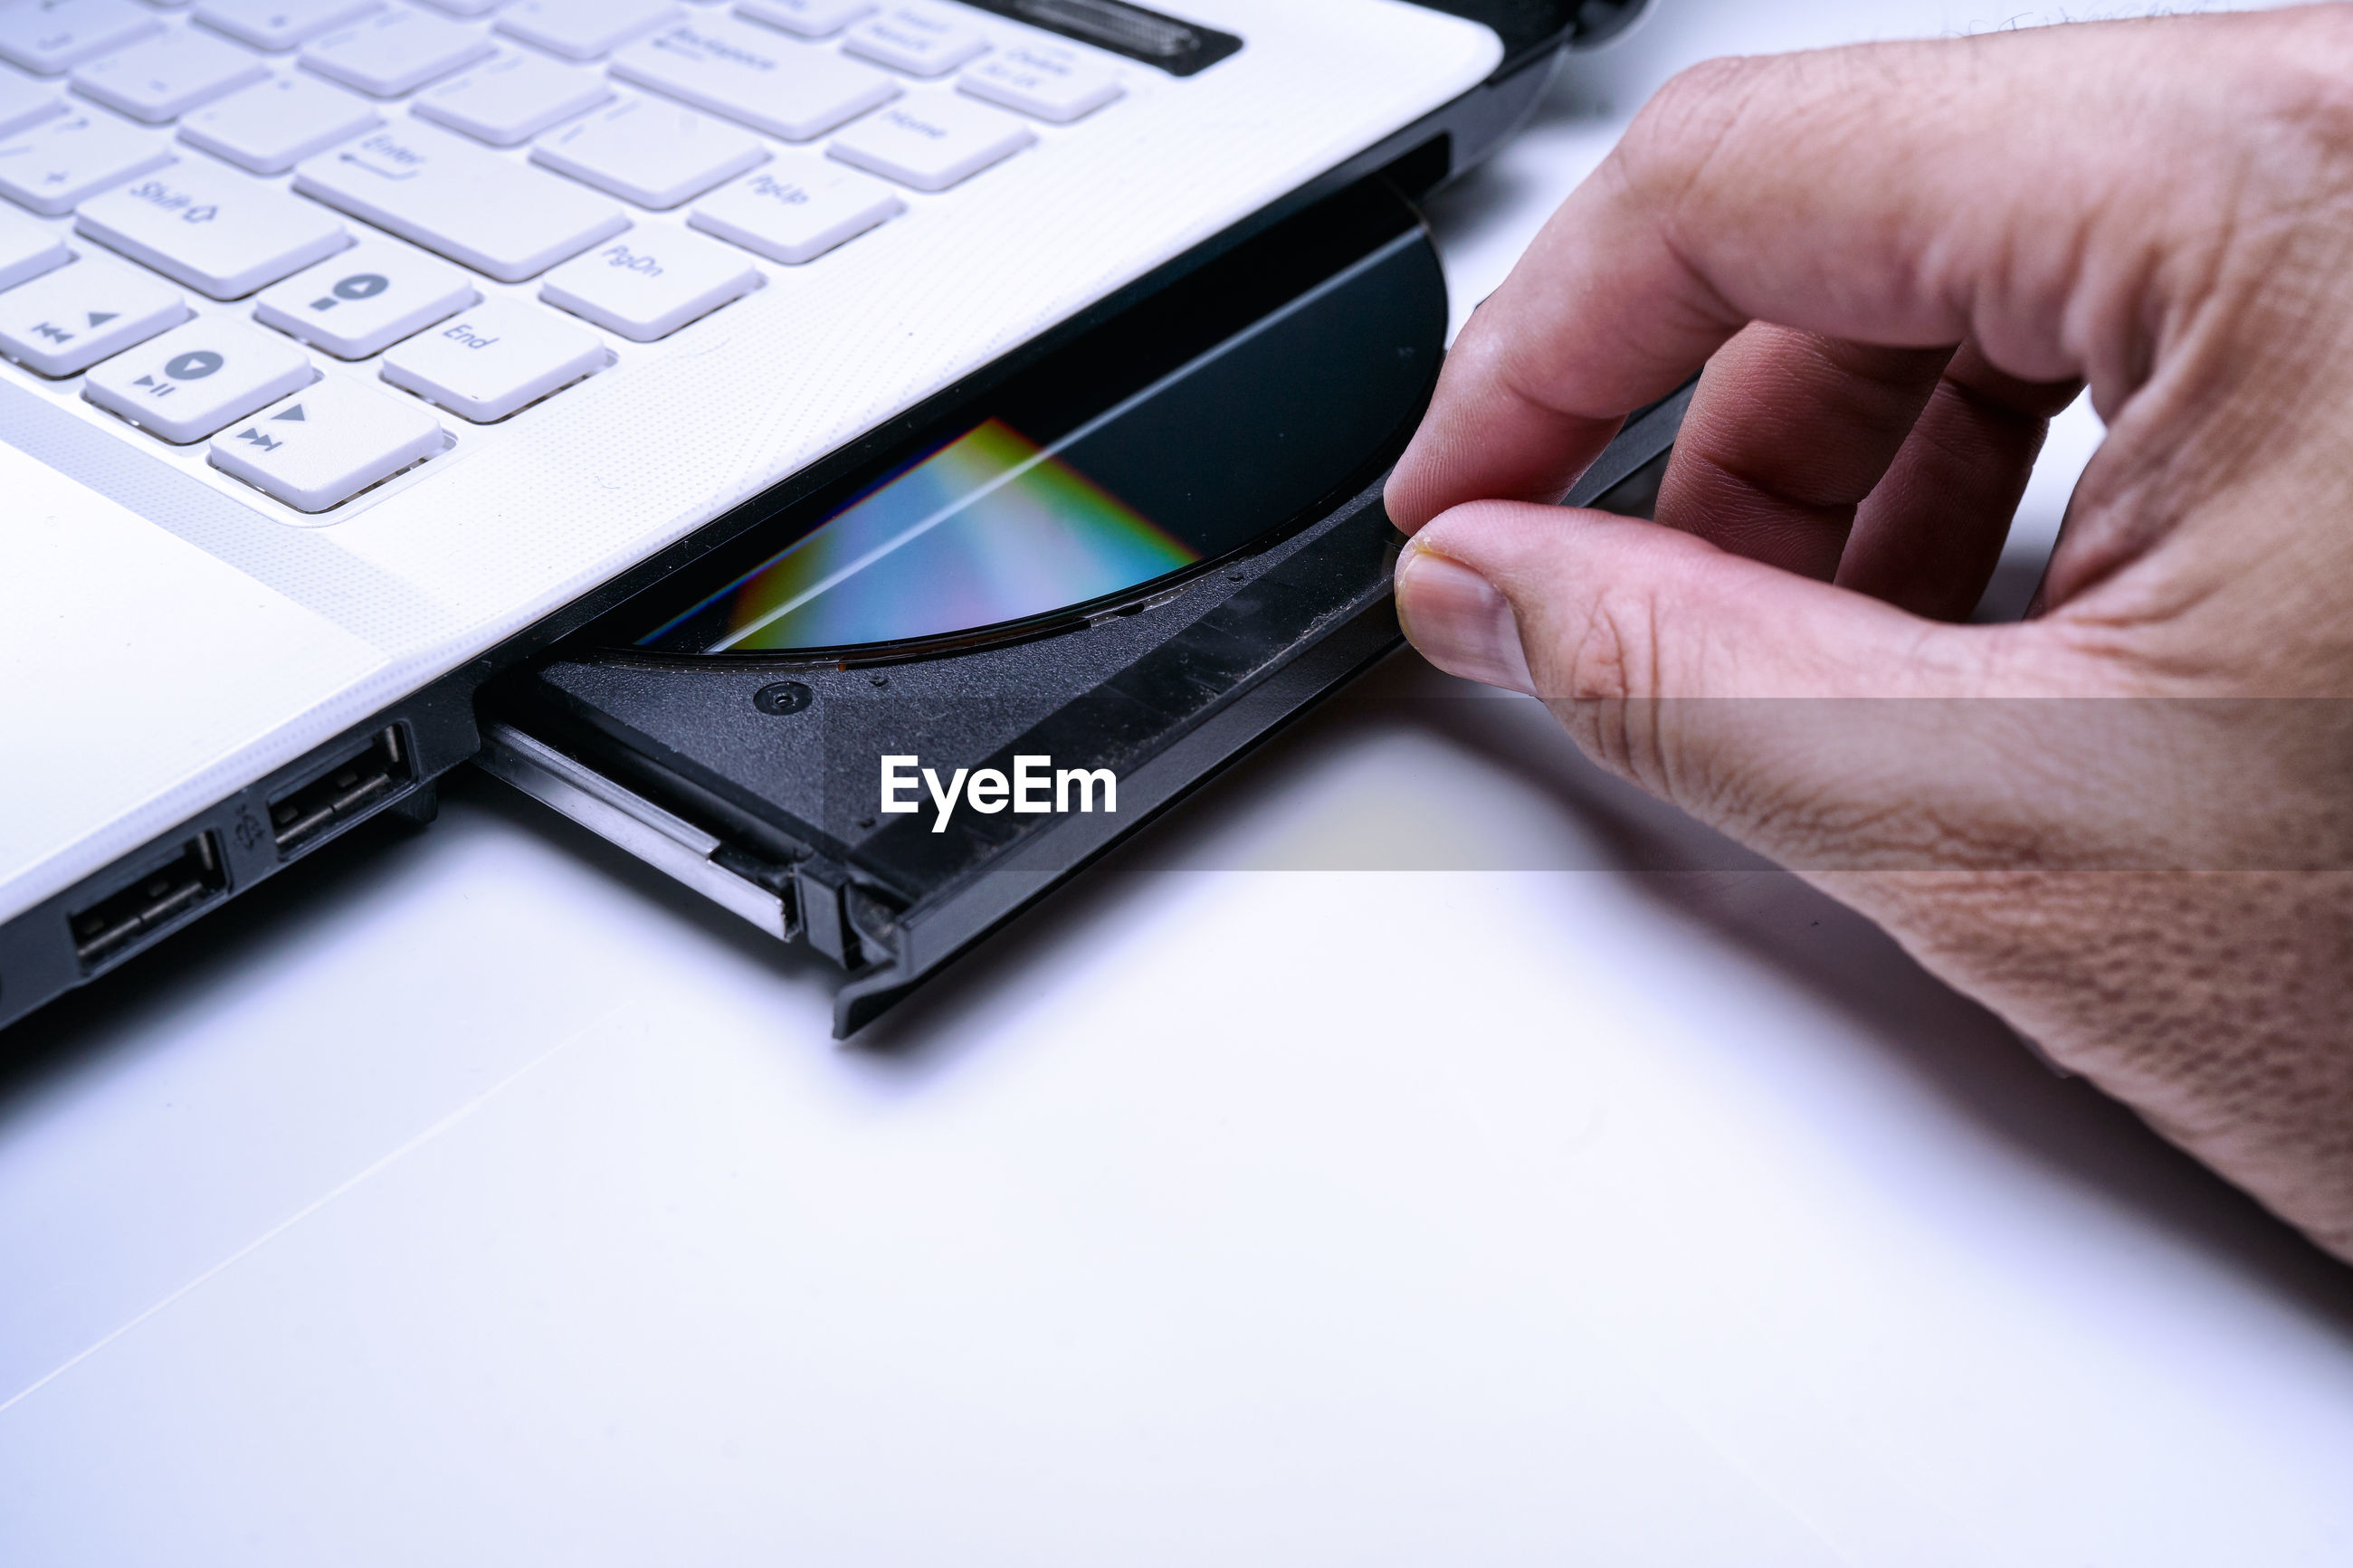 human hand, computer, technology, hand, human body part, computer equipment, communication, connection, body part, wireless technology, keyboard, one person, laptop, portable information device, computer keyboard, real people, finger, indoors, human finger, surfing the net, computer key